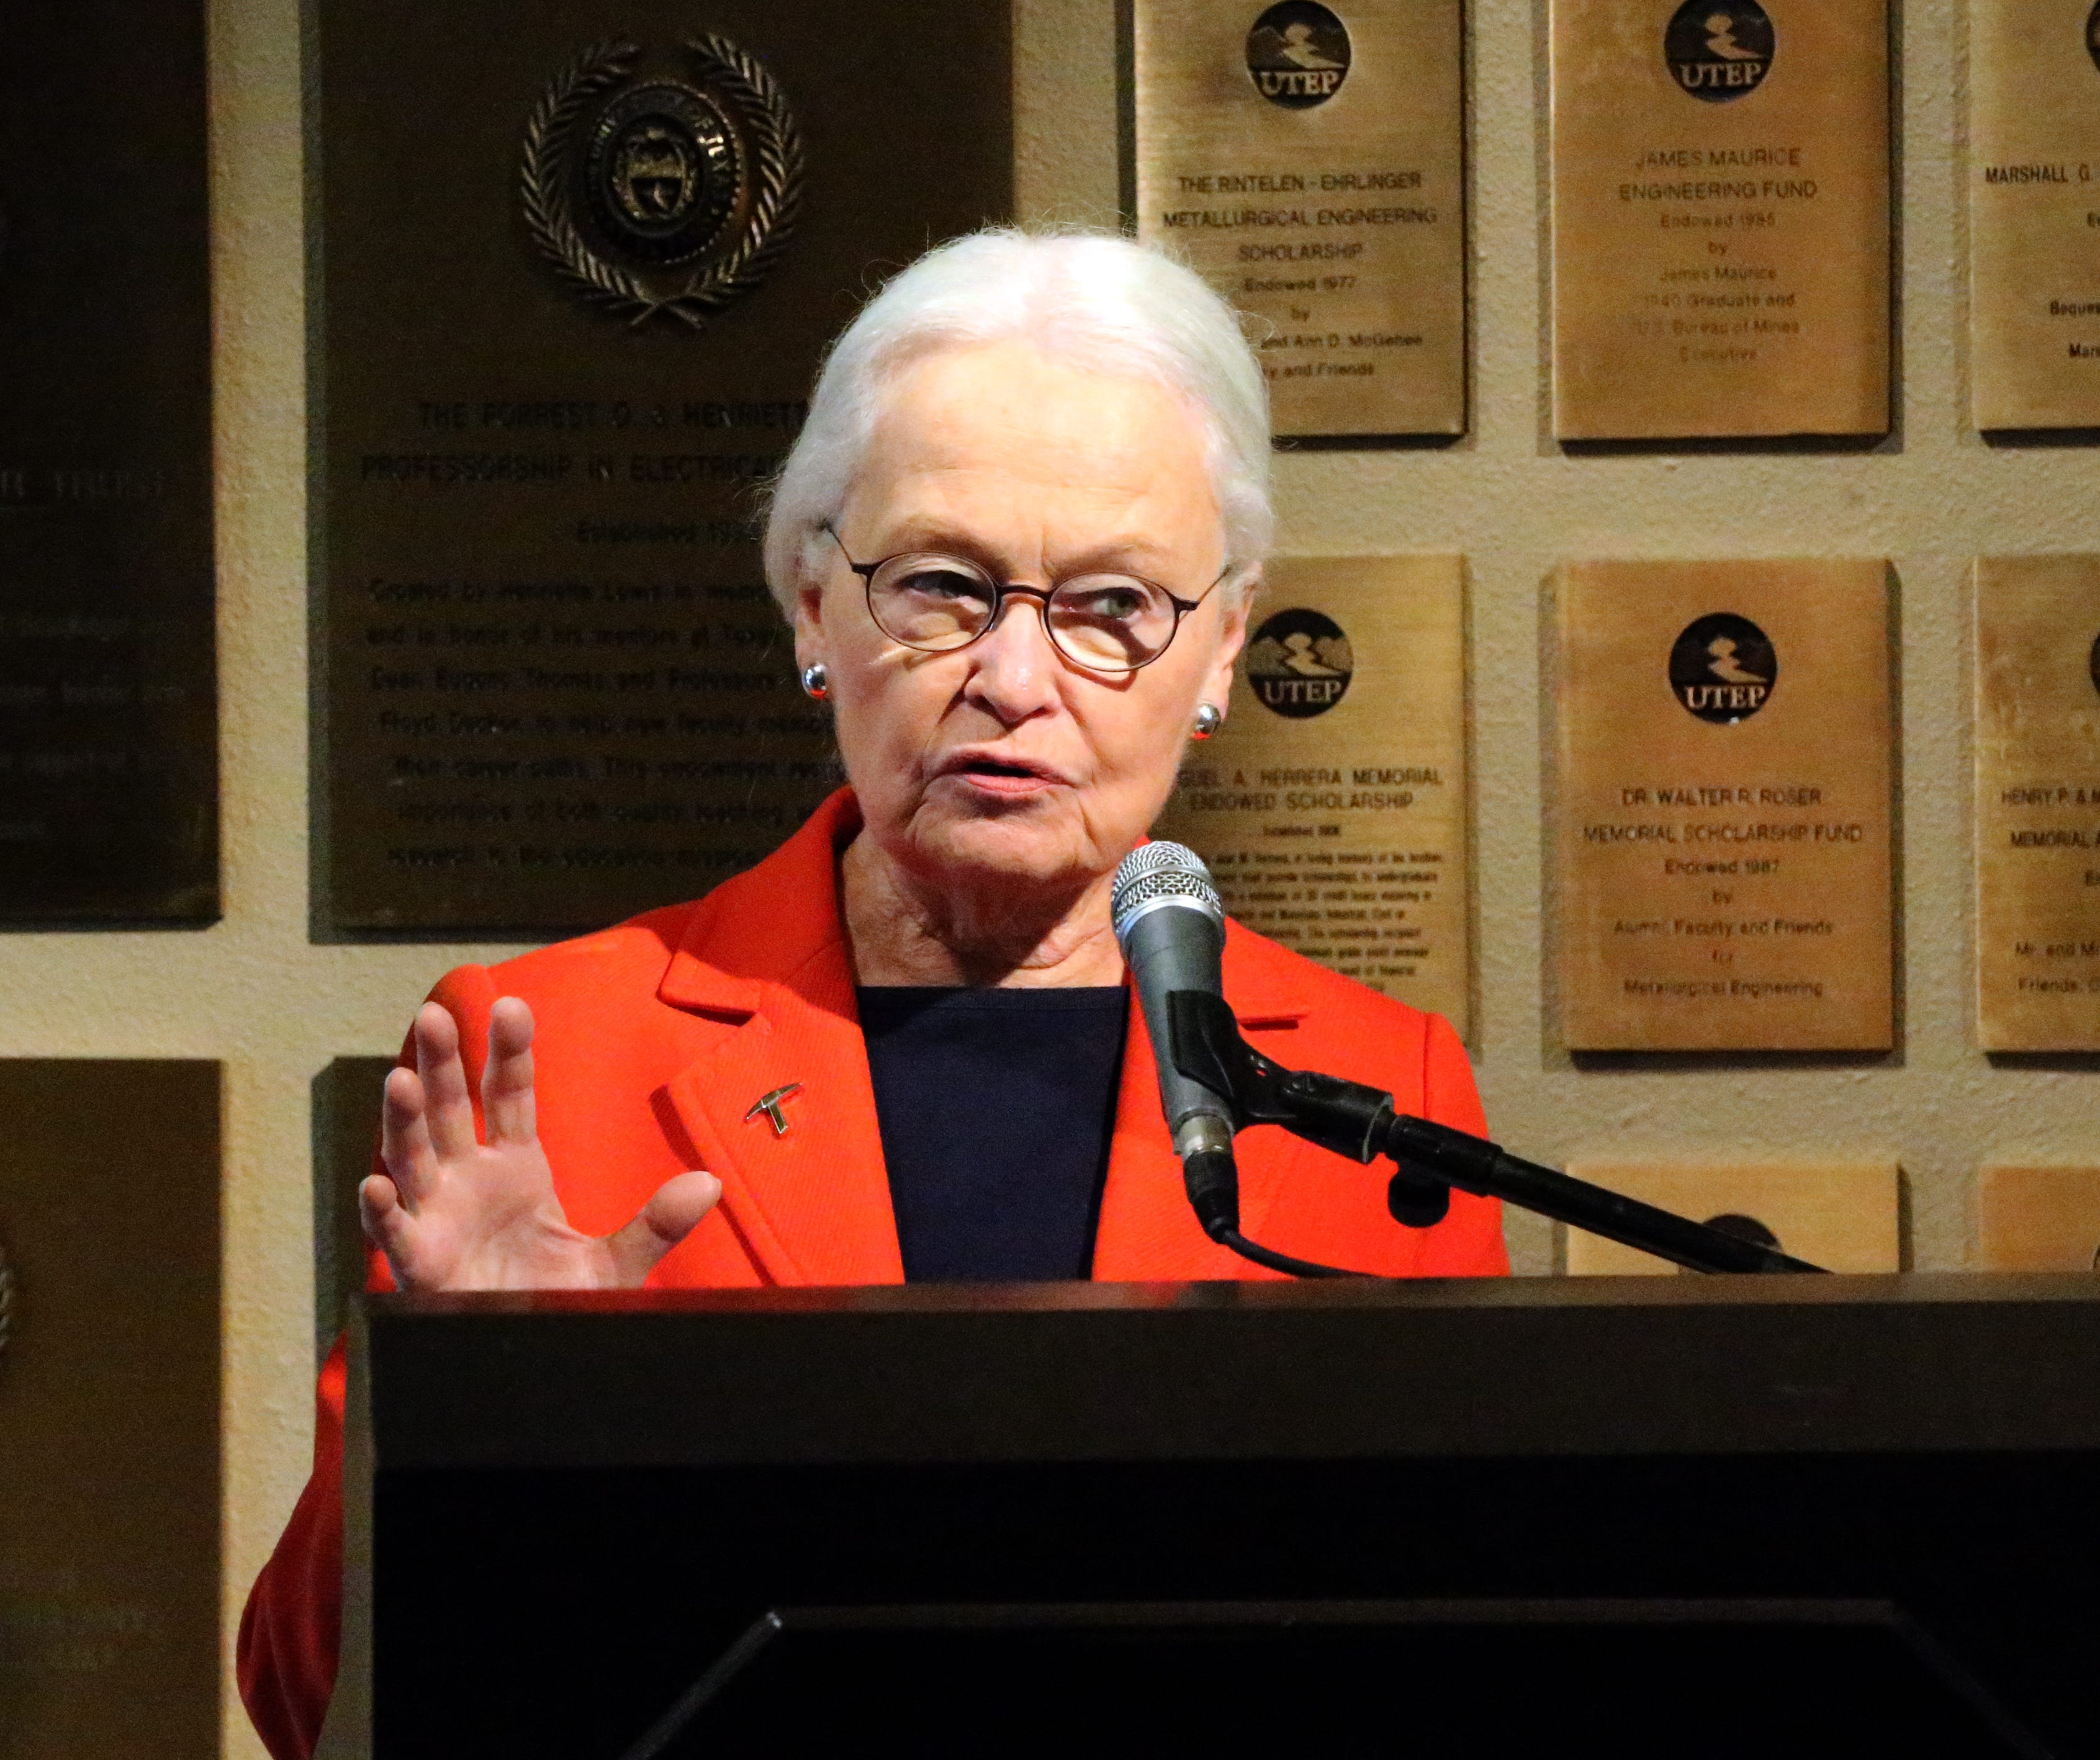 UTEP wins community impact award from Texas governor's office | El Paso Times